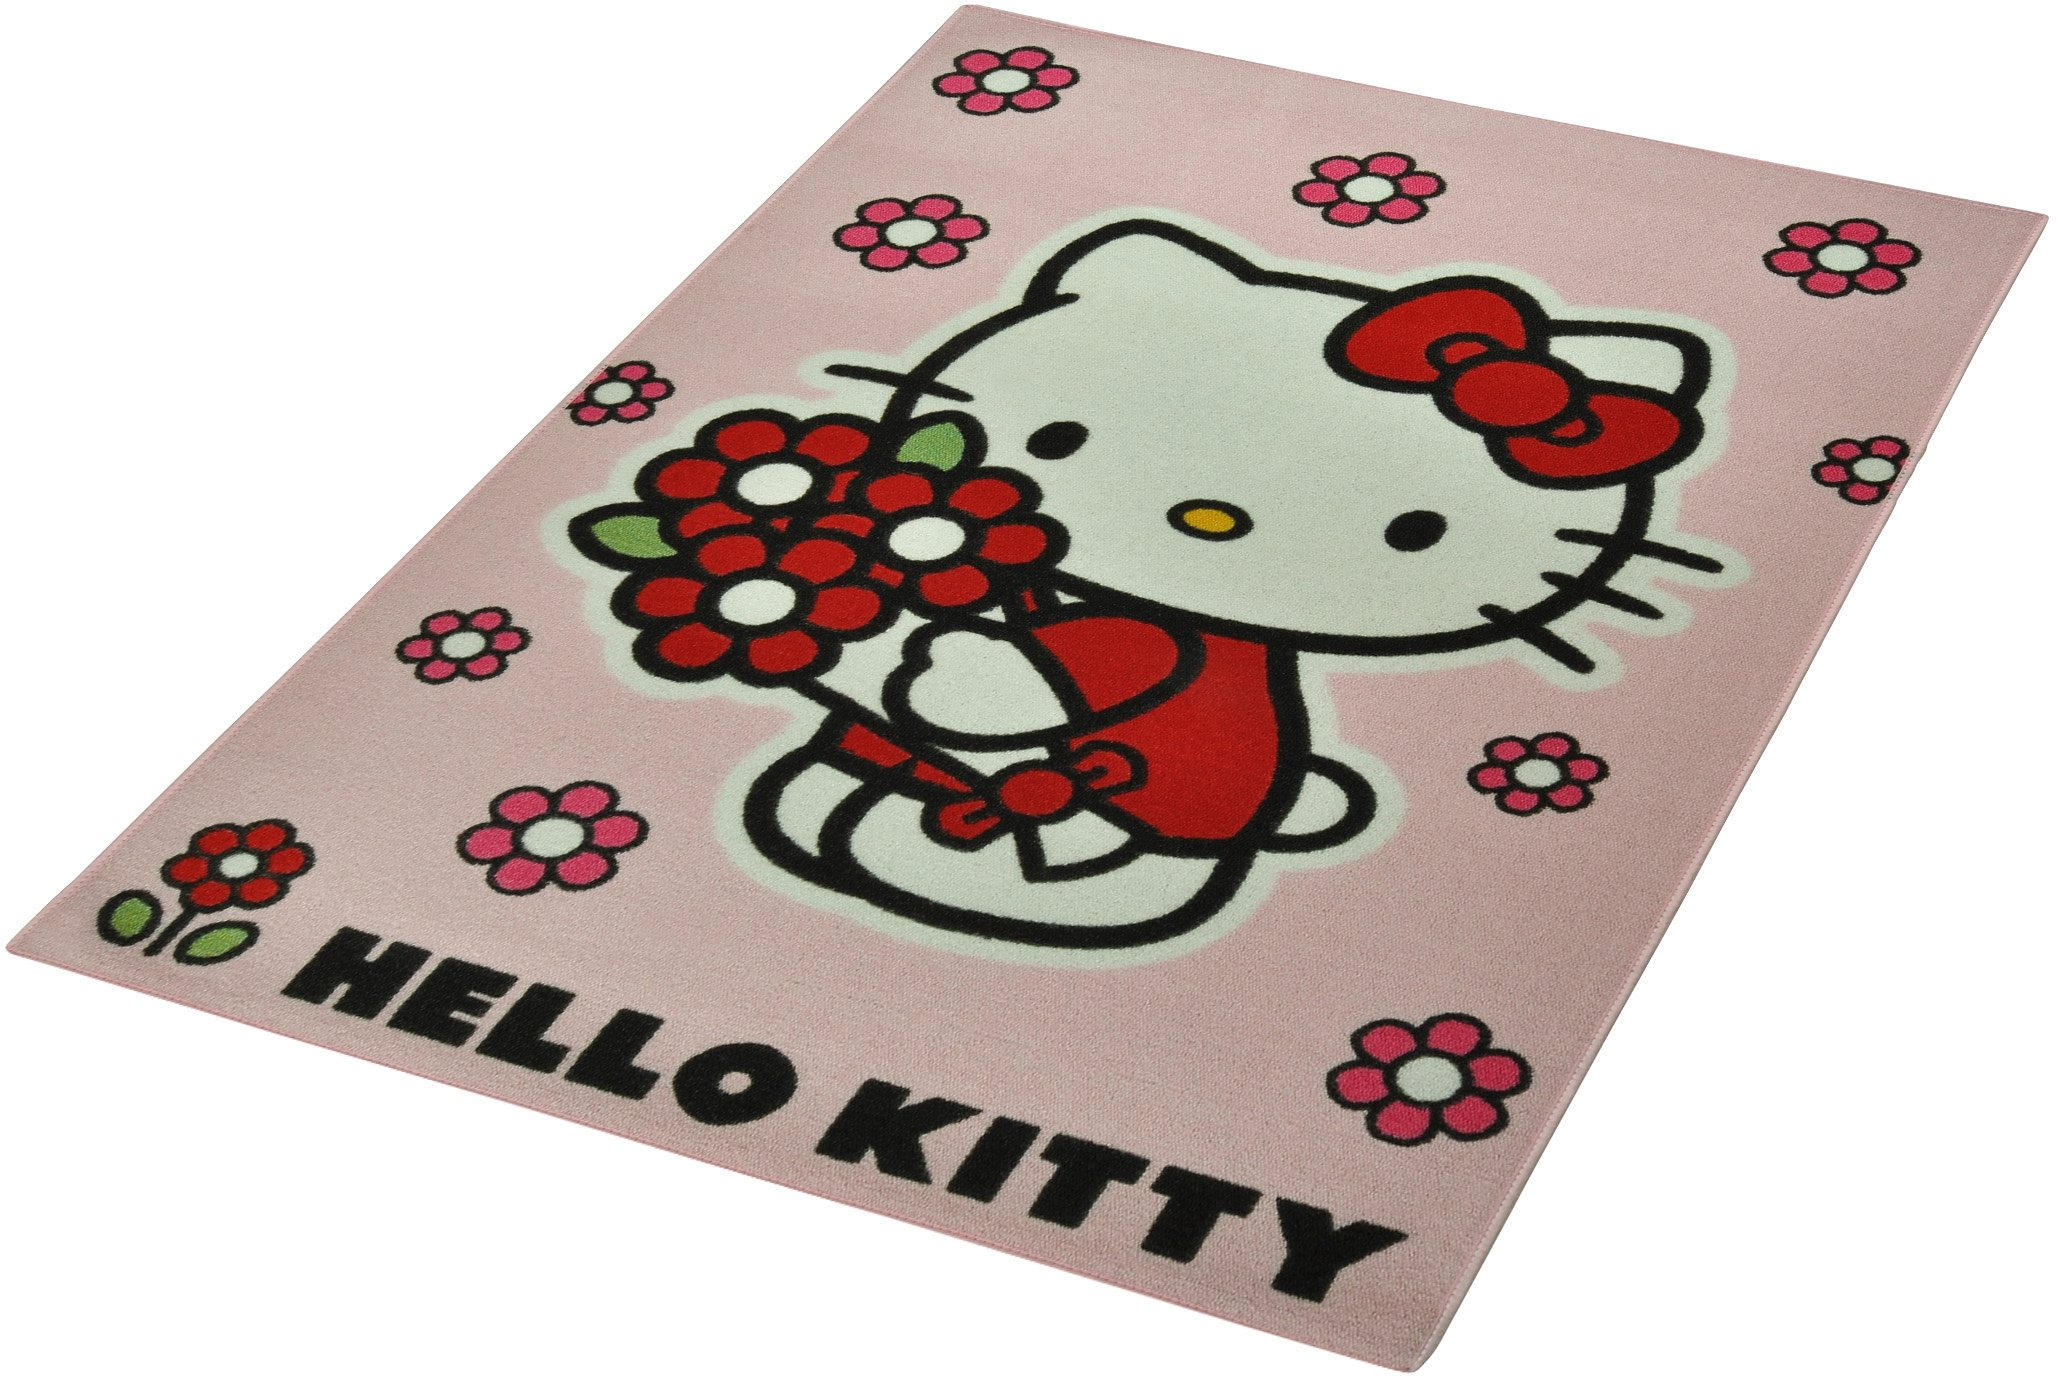 Kinderteppich »Hello Kitty - Flower«, Hello Kitty, rechteckig, Höhe 7 mm | Kinderzimmer > Textilien für Kinder > Kinderteppiche | Hello Kitty